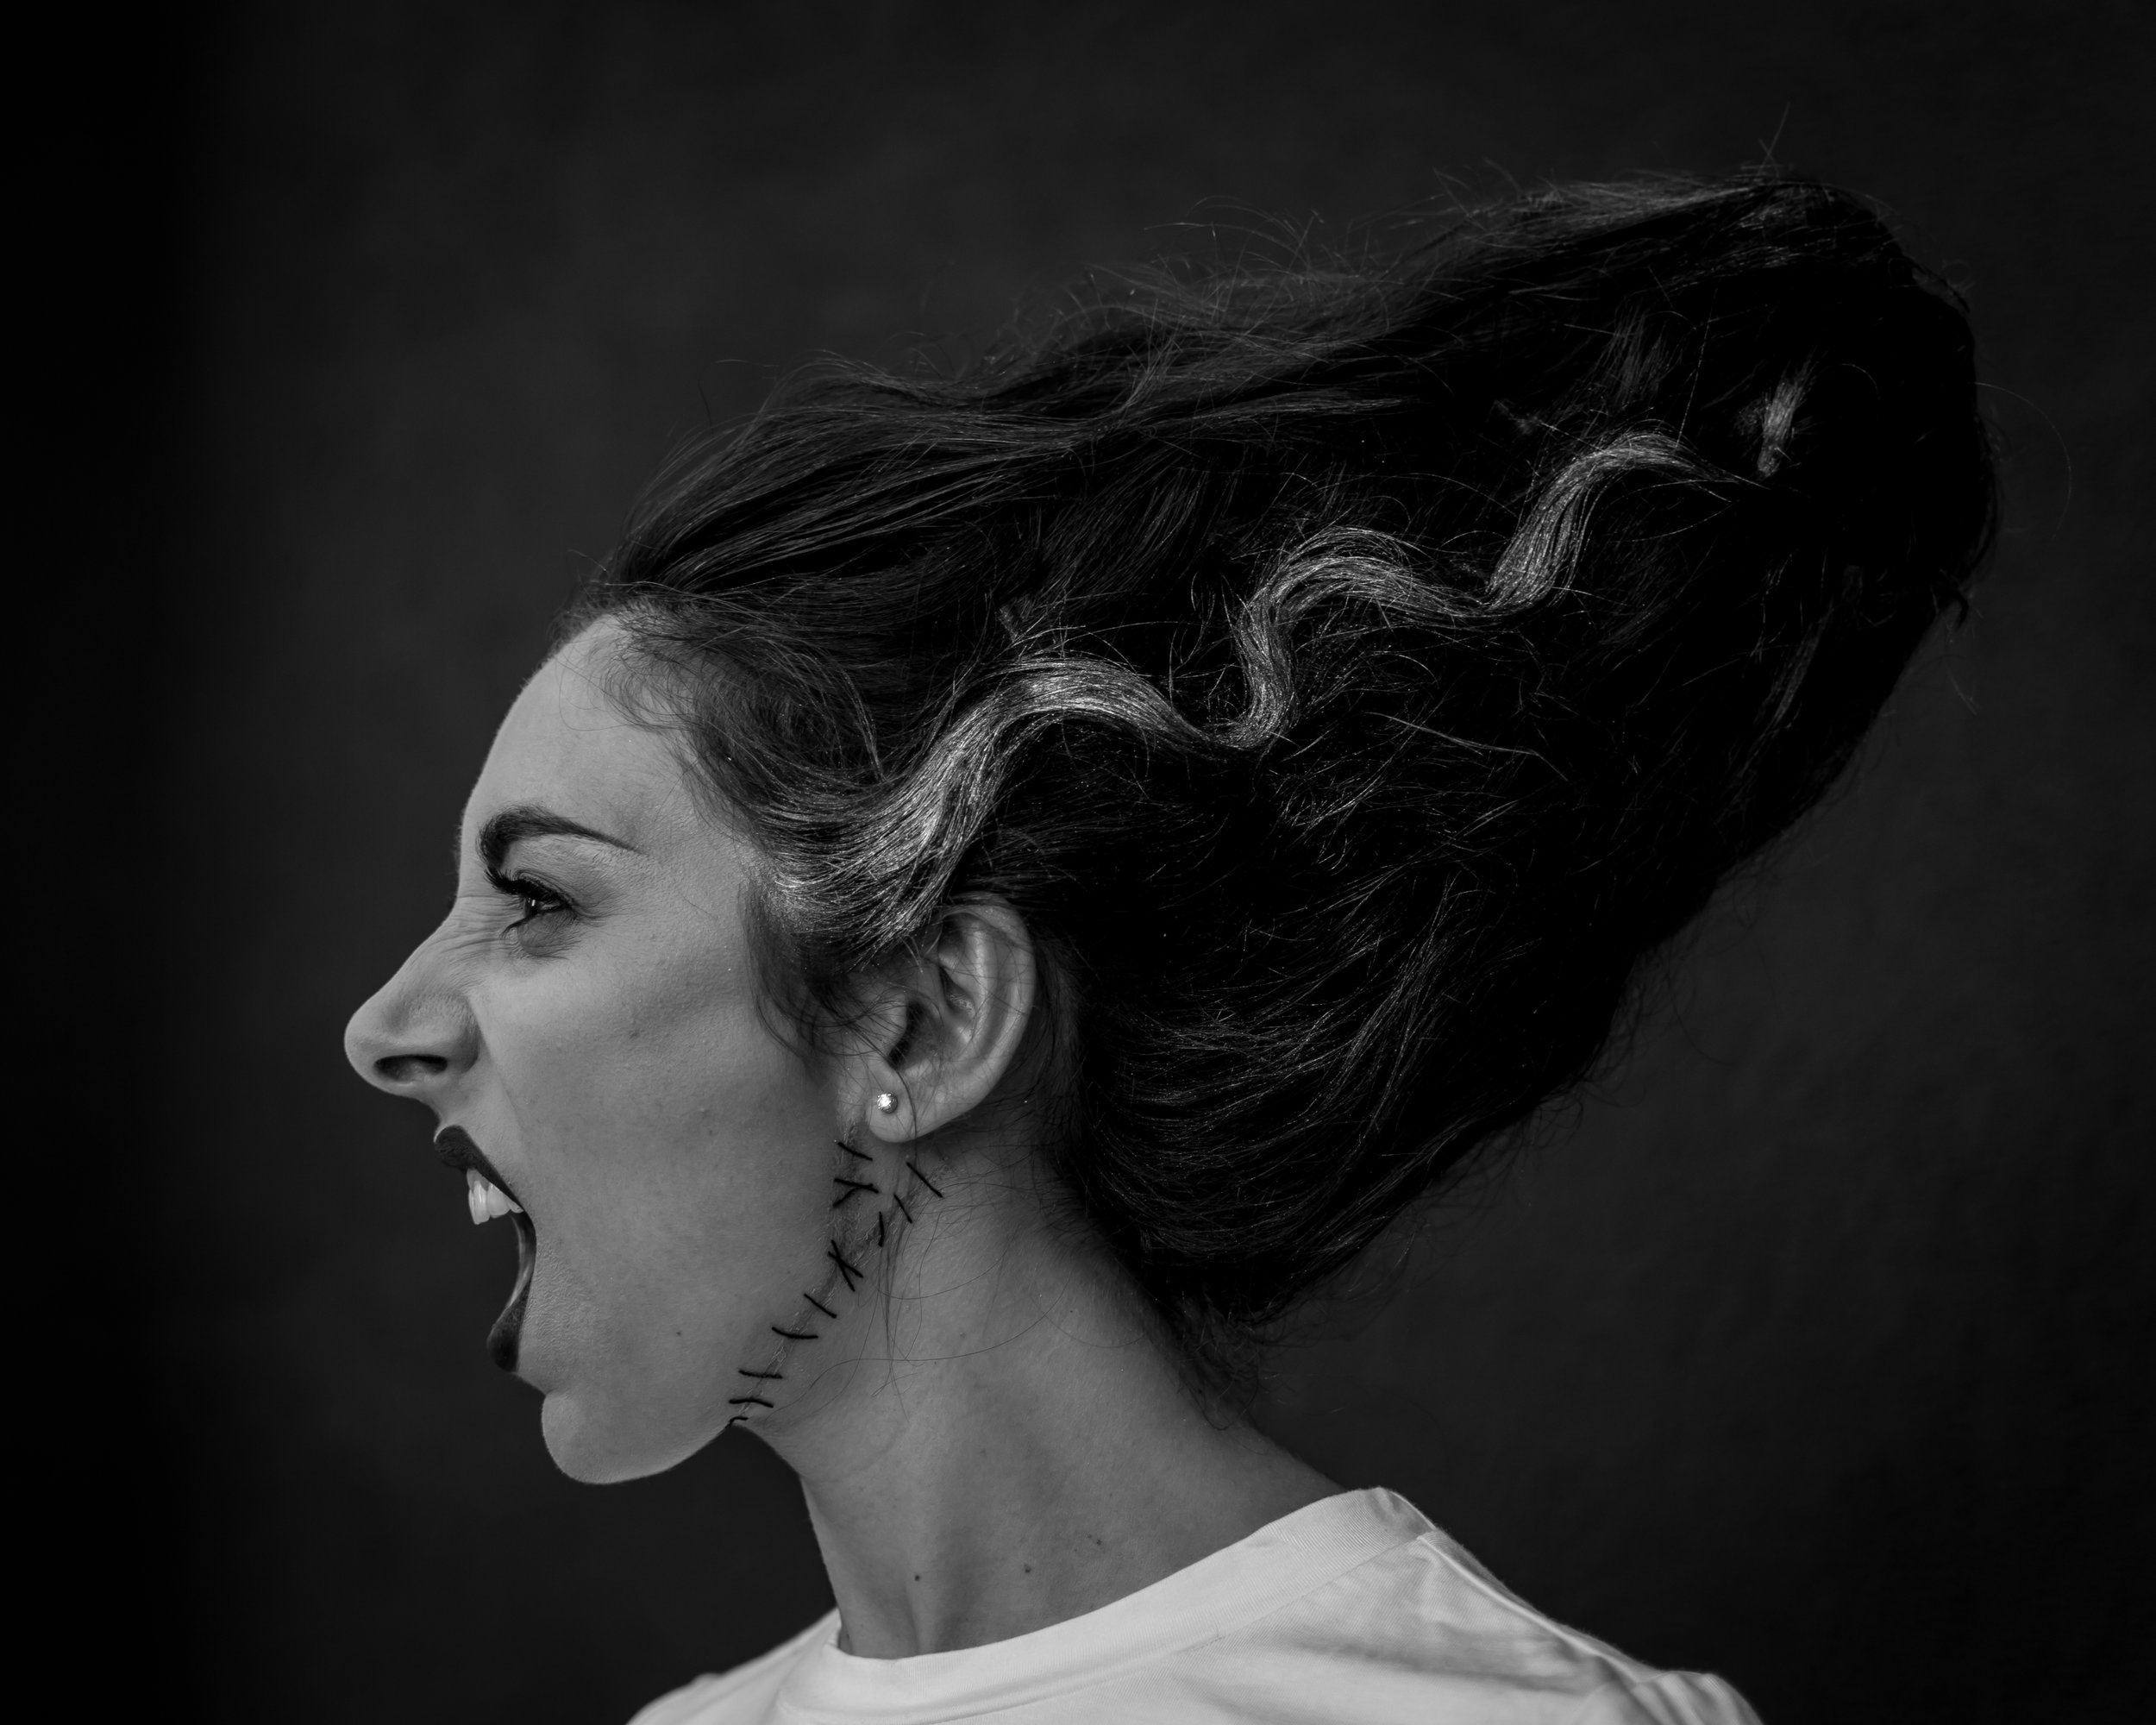 Bride of Frankenstein - Makeup by MJ DuBarr, Hair by Madison Mabe